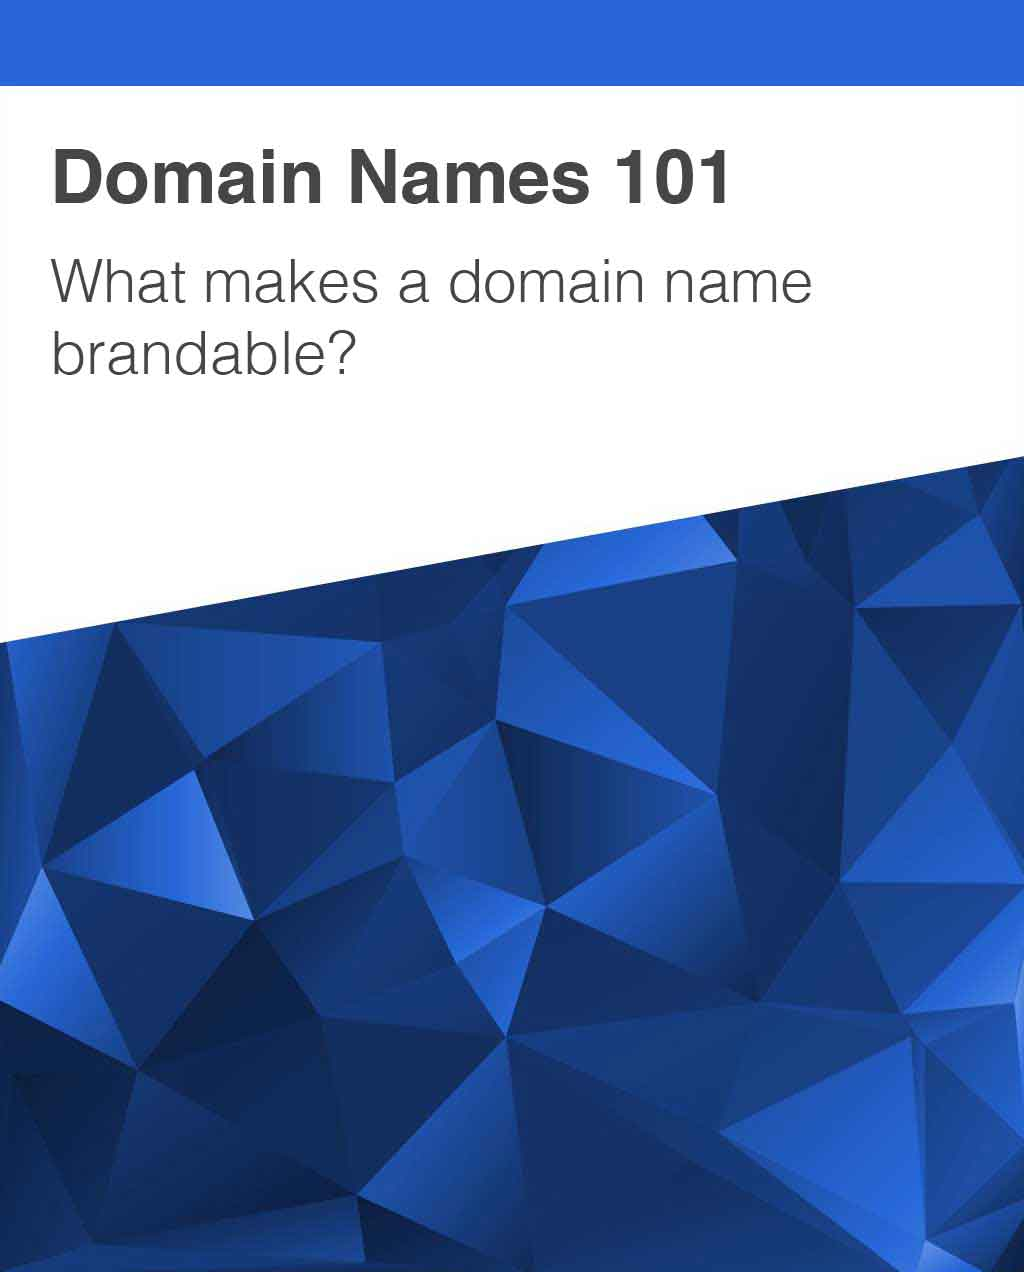 Brandable Domain Name